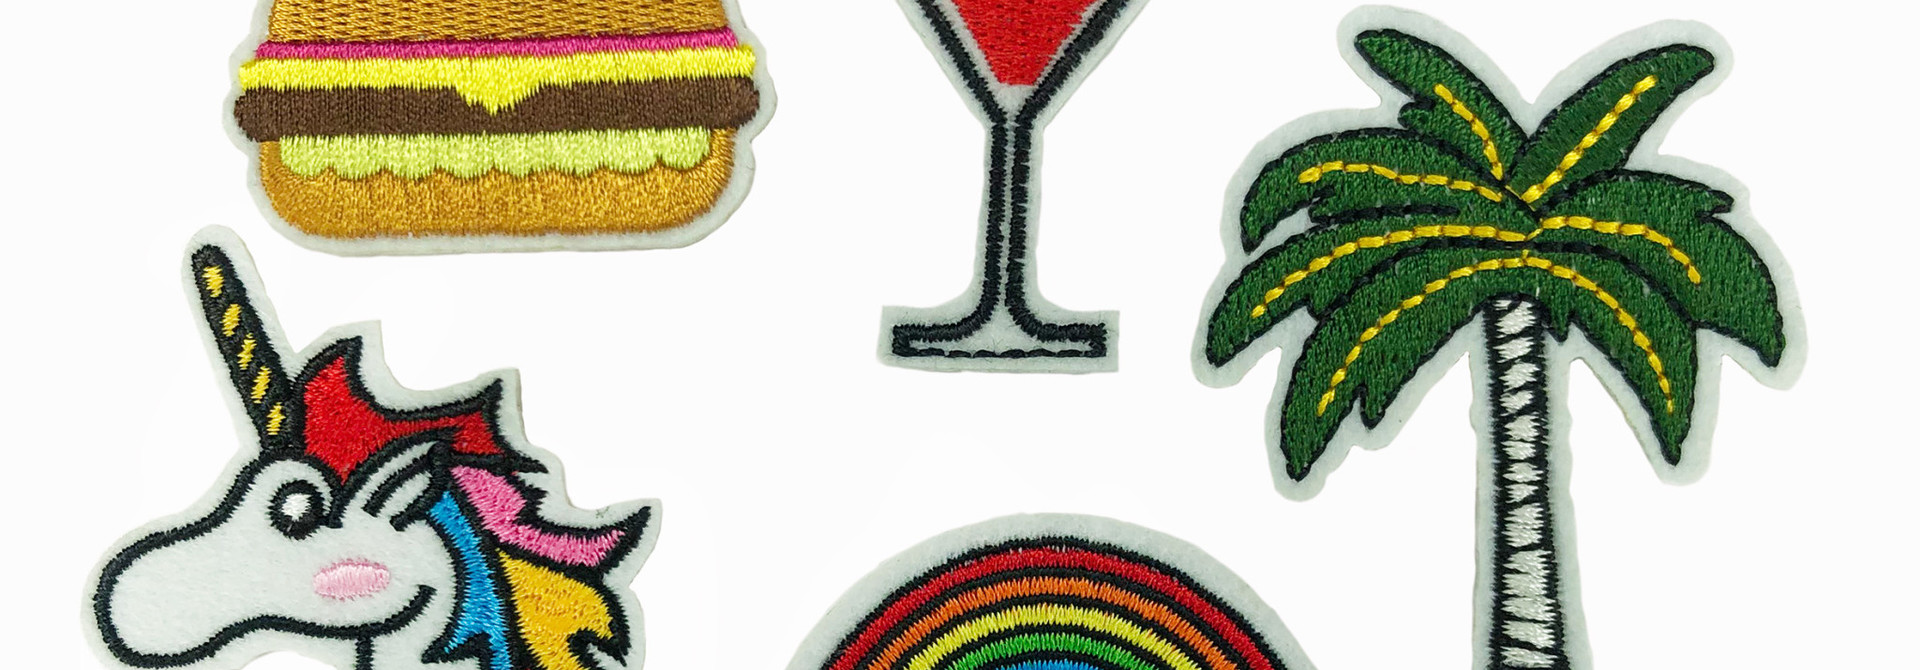 THE SHOP 5 LIFESTYLE PATCHES